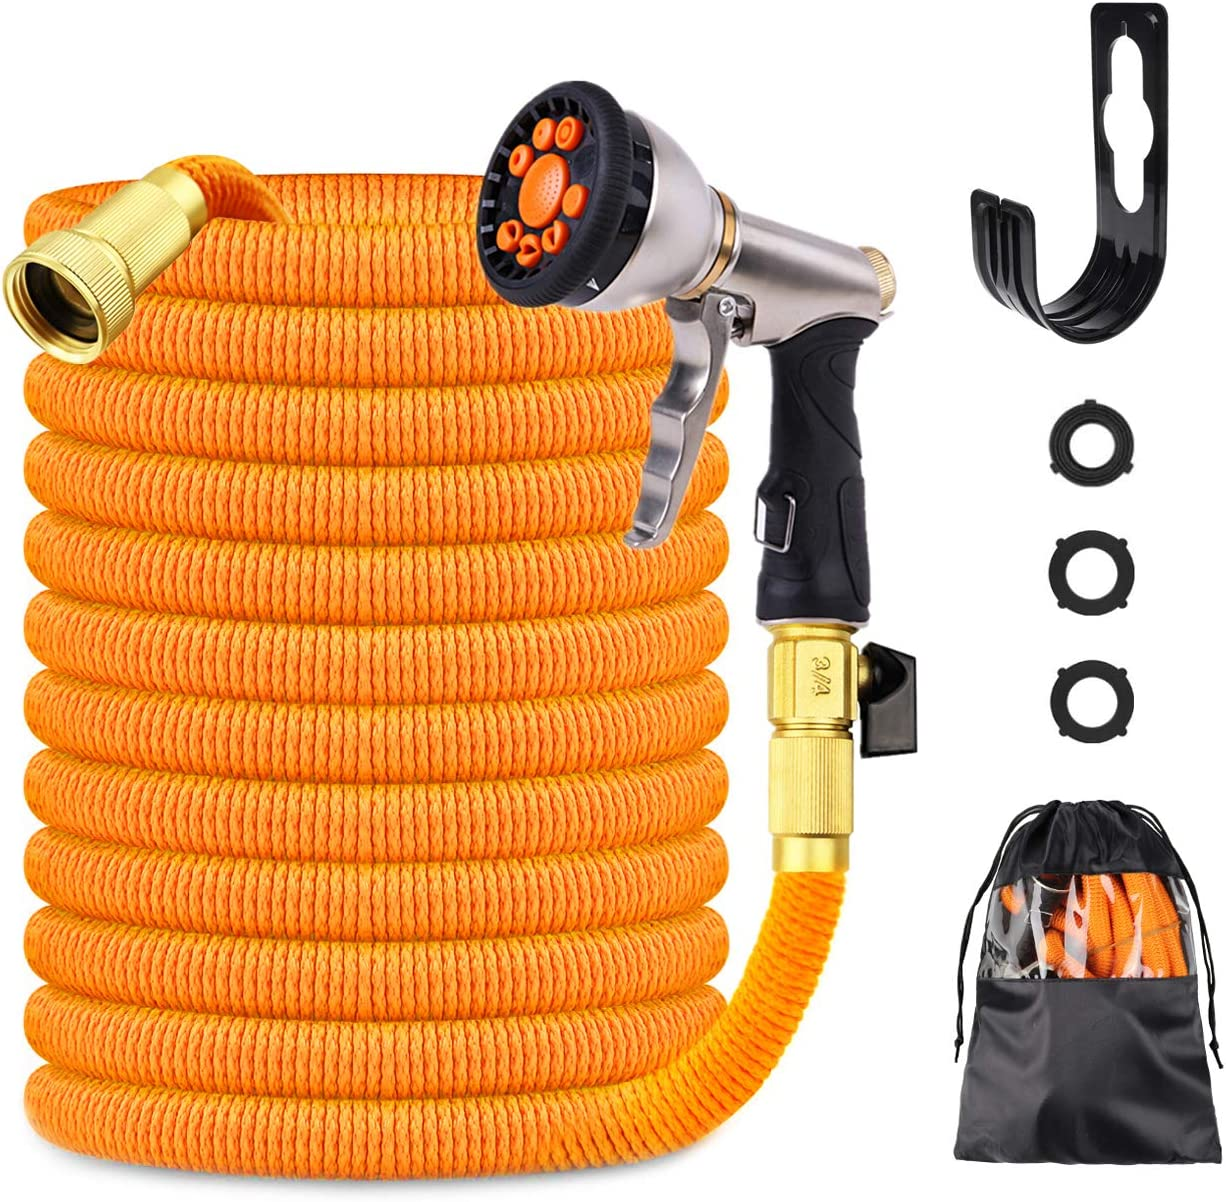 "Nefeeko Garden Hose,50ft Expandable Garden Hose with 9 Functions Alloy Nozzle, Flexible Lightweight Water Hose Pipe Heavy Duty with 3/4"" Solid Brass Fittings for Watering Washing"